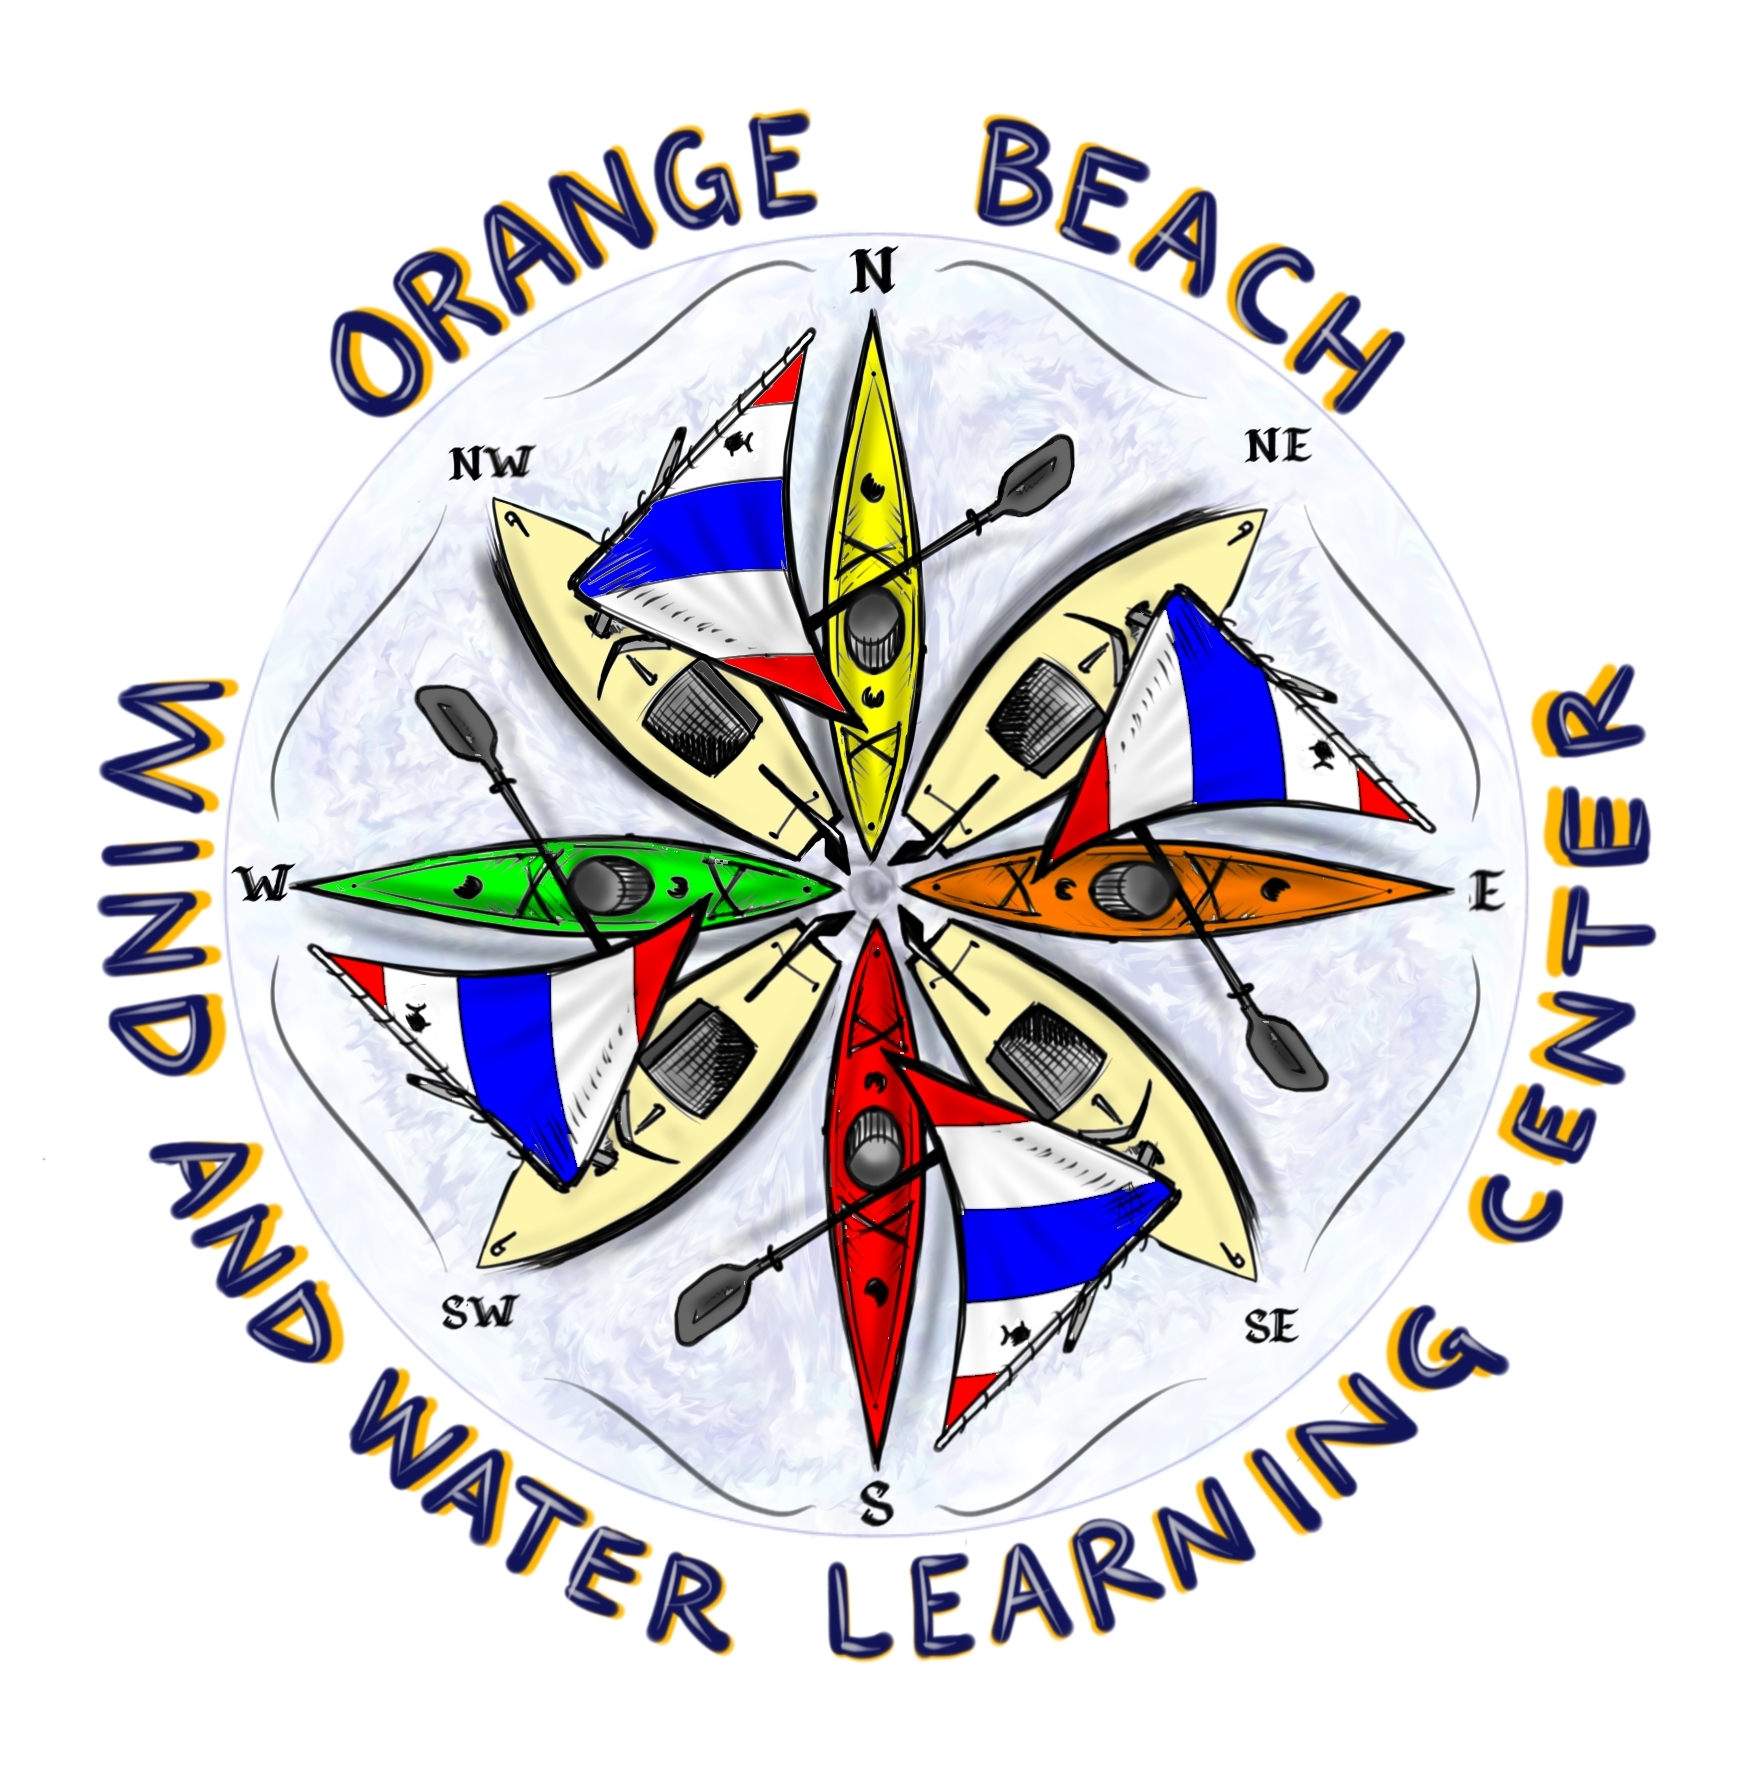 Orange Beach Wind and Water Learning Center